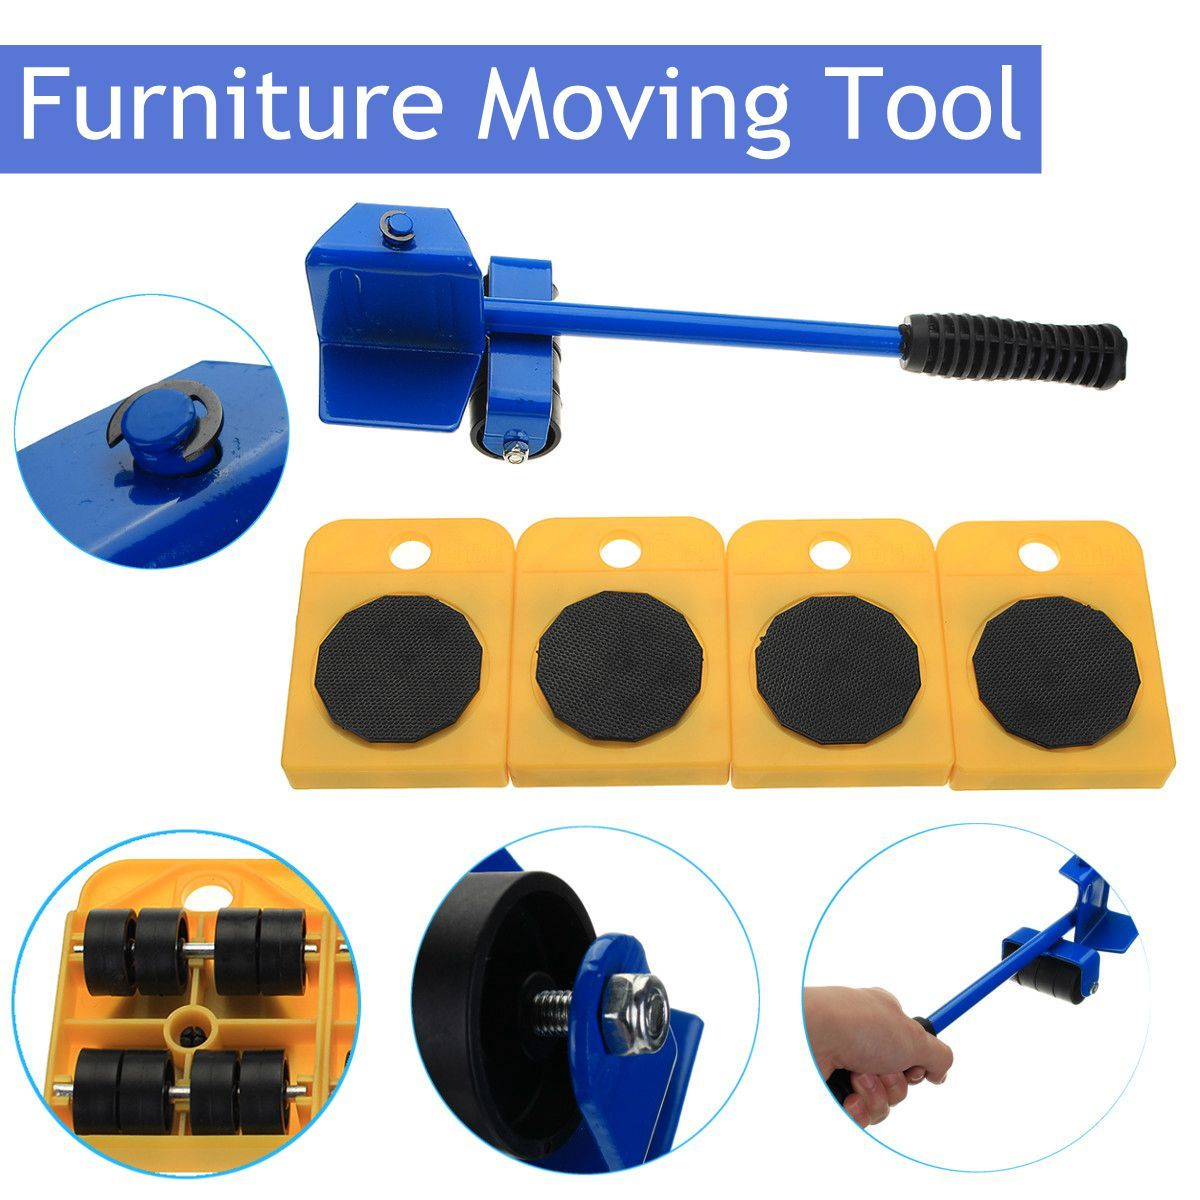 Durable Furniture Moving System With Lifter Tool And Furniture Moving Heavy Stuffs Moving Tool Home Utilities